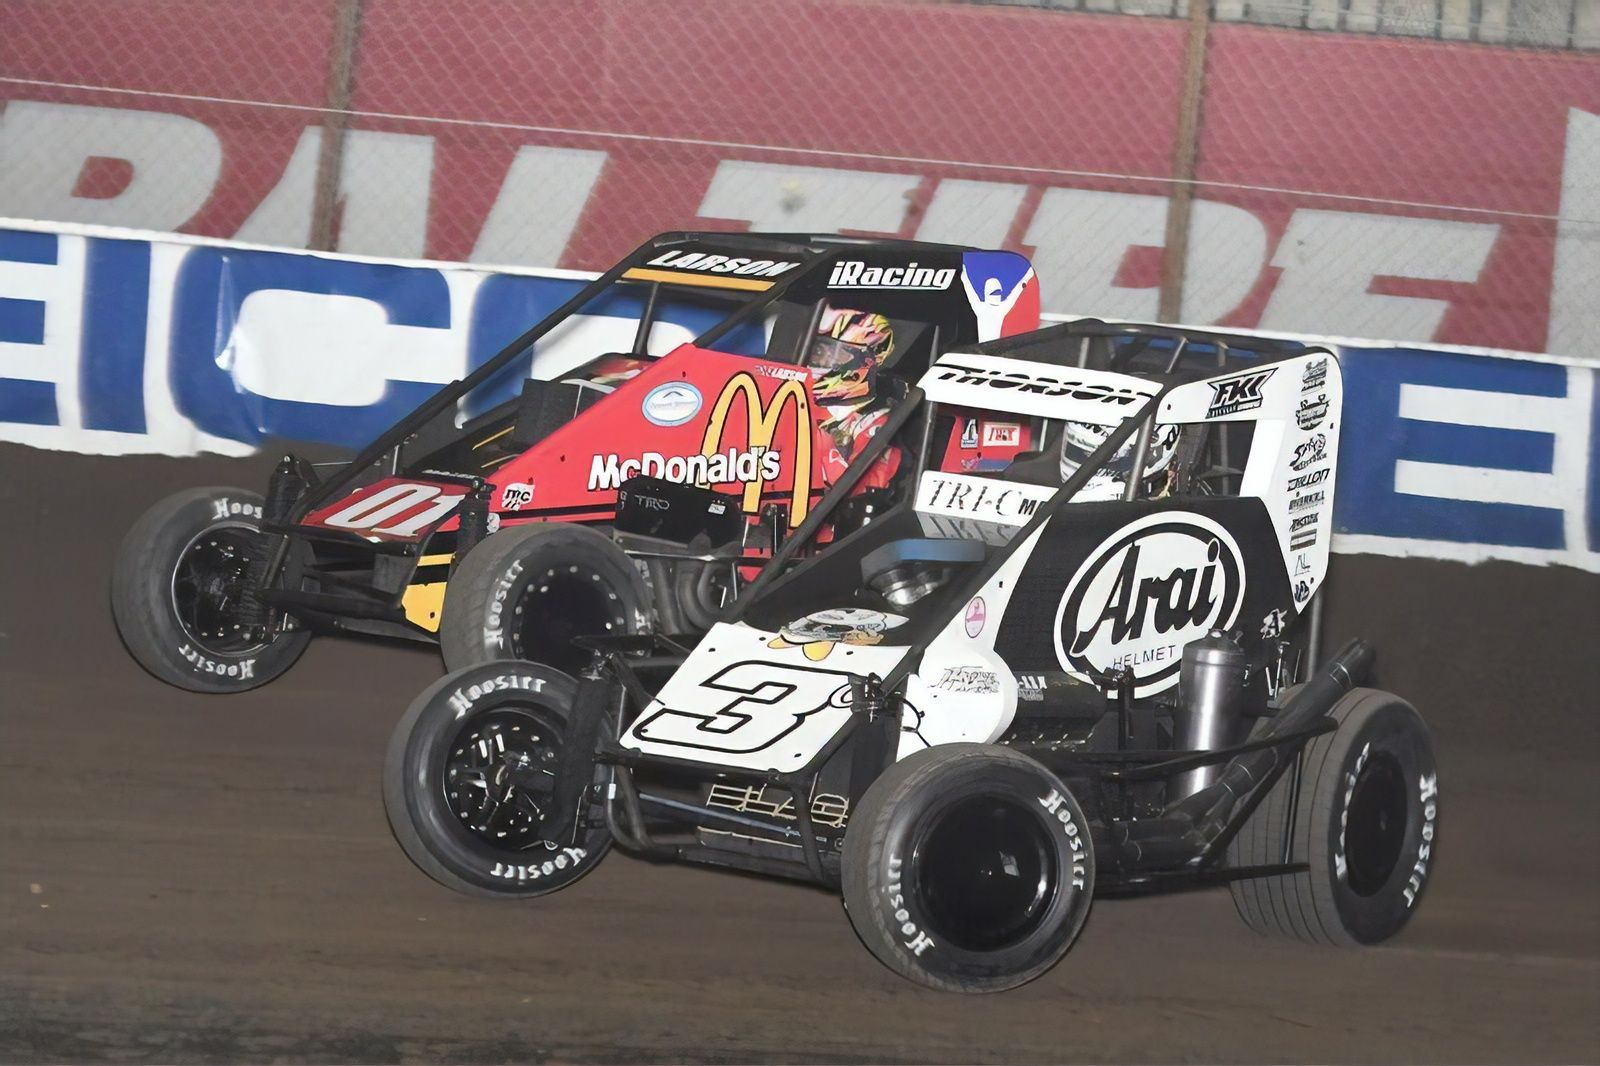 chili bowl entry list includes usac nascar and indycar stars chili bowl entry list includes usac